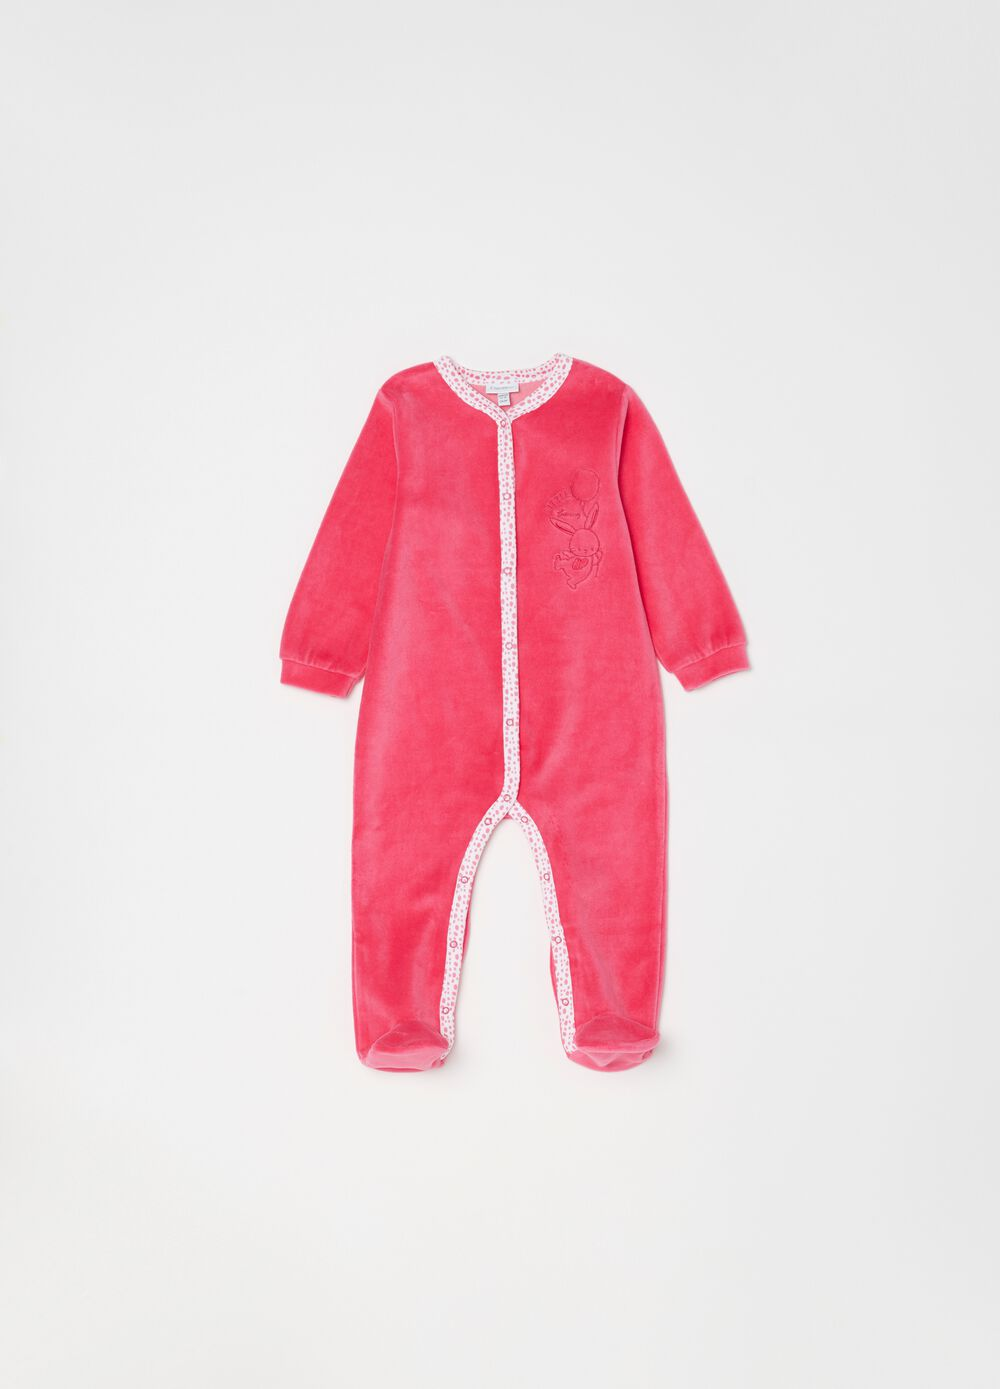 Onesie with feet, V-neck and embroidery